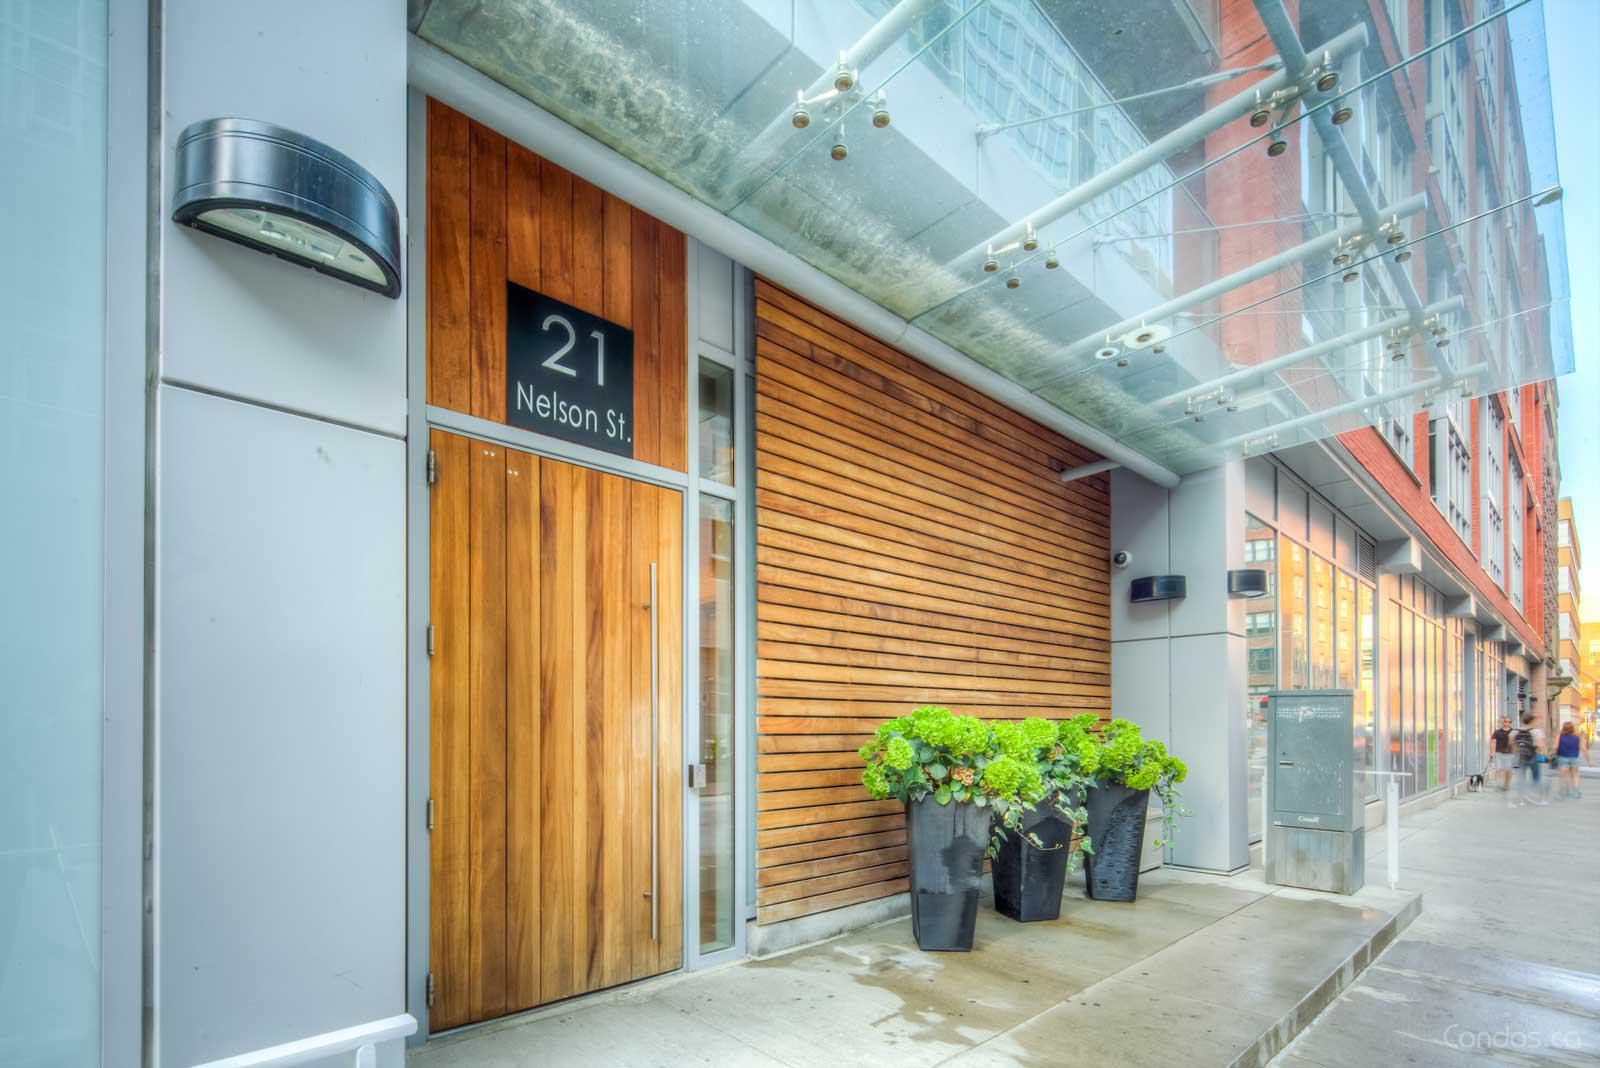 Boutique Condos at 21 Nelson St, Toronto 1